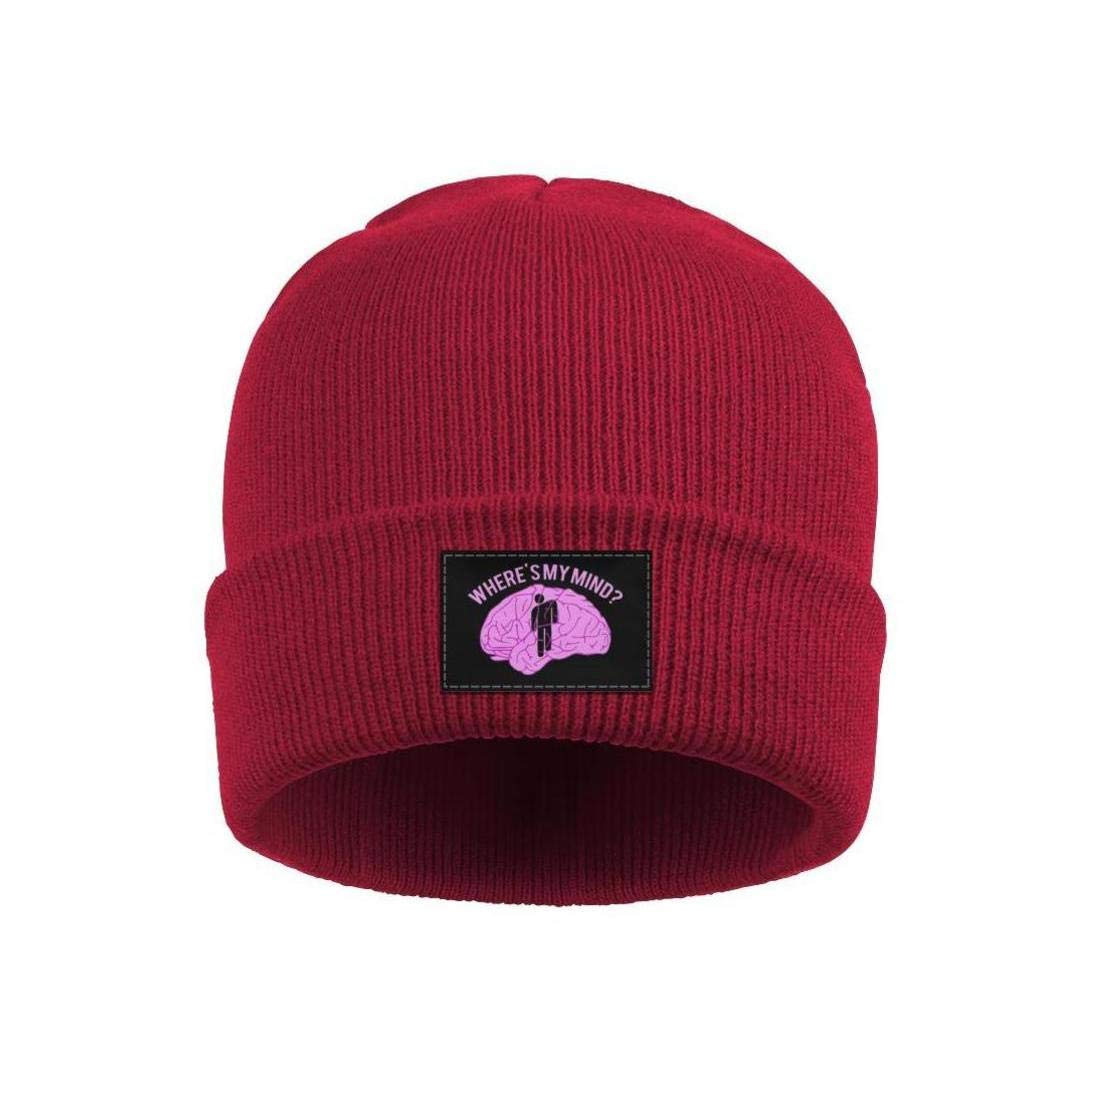 a746b530 Amazon.com: HOPAPALA Billie-Eilish-Where's-My-Mind- Wool Cuffed Plain Beanie  Warm Winter Hats Watch Skull Cap for Men Women: Clothing